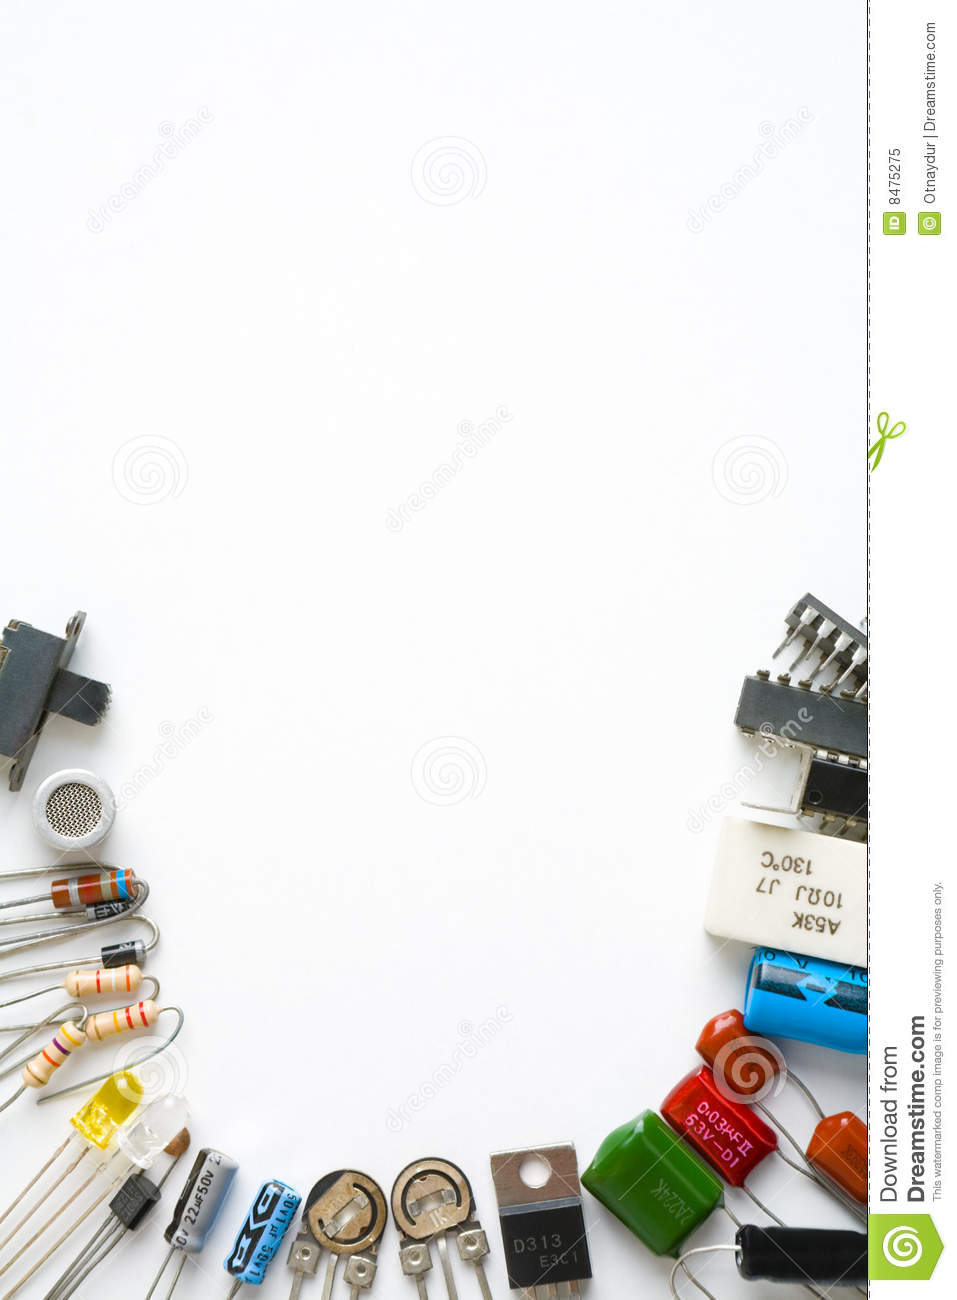 Electronic Components On White Background Stock Image